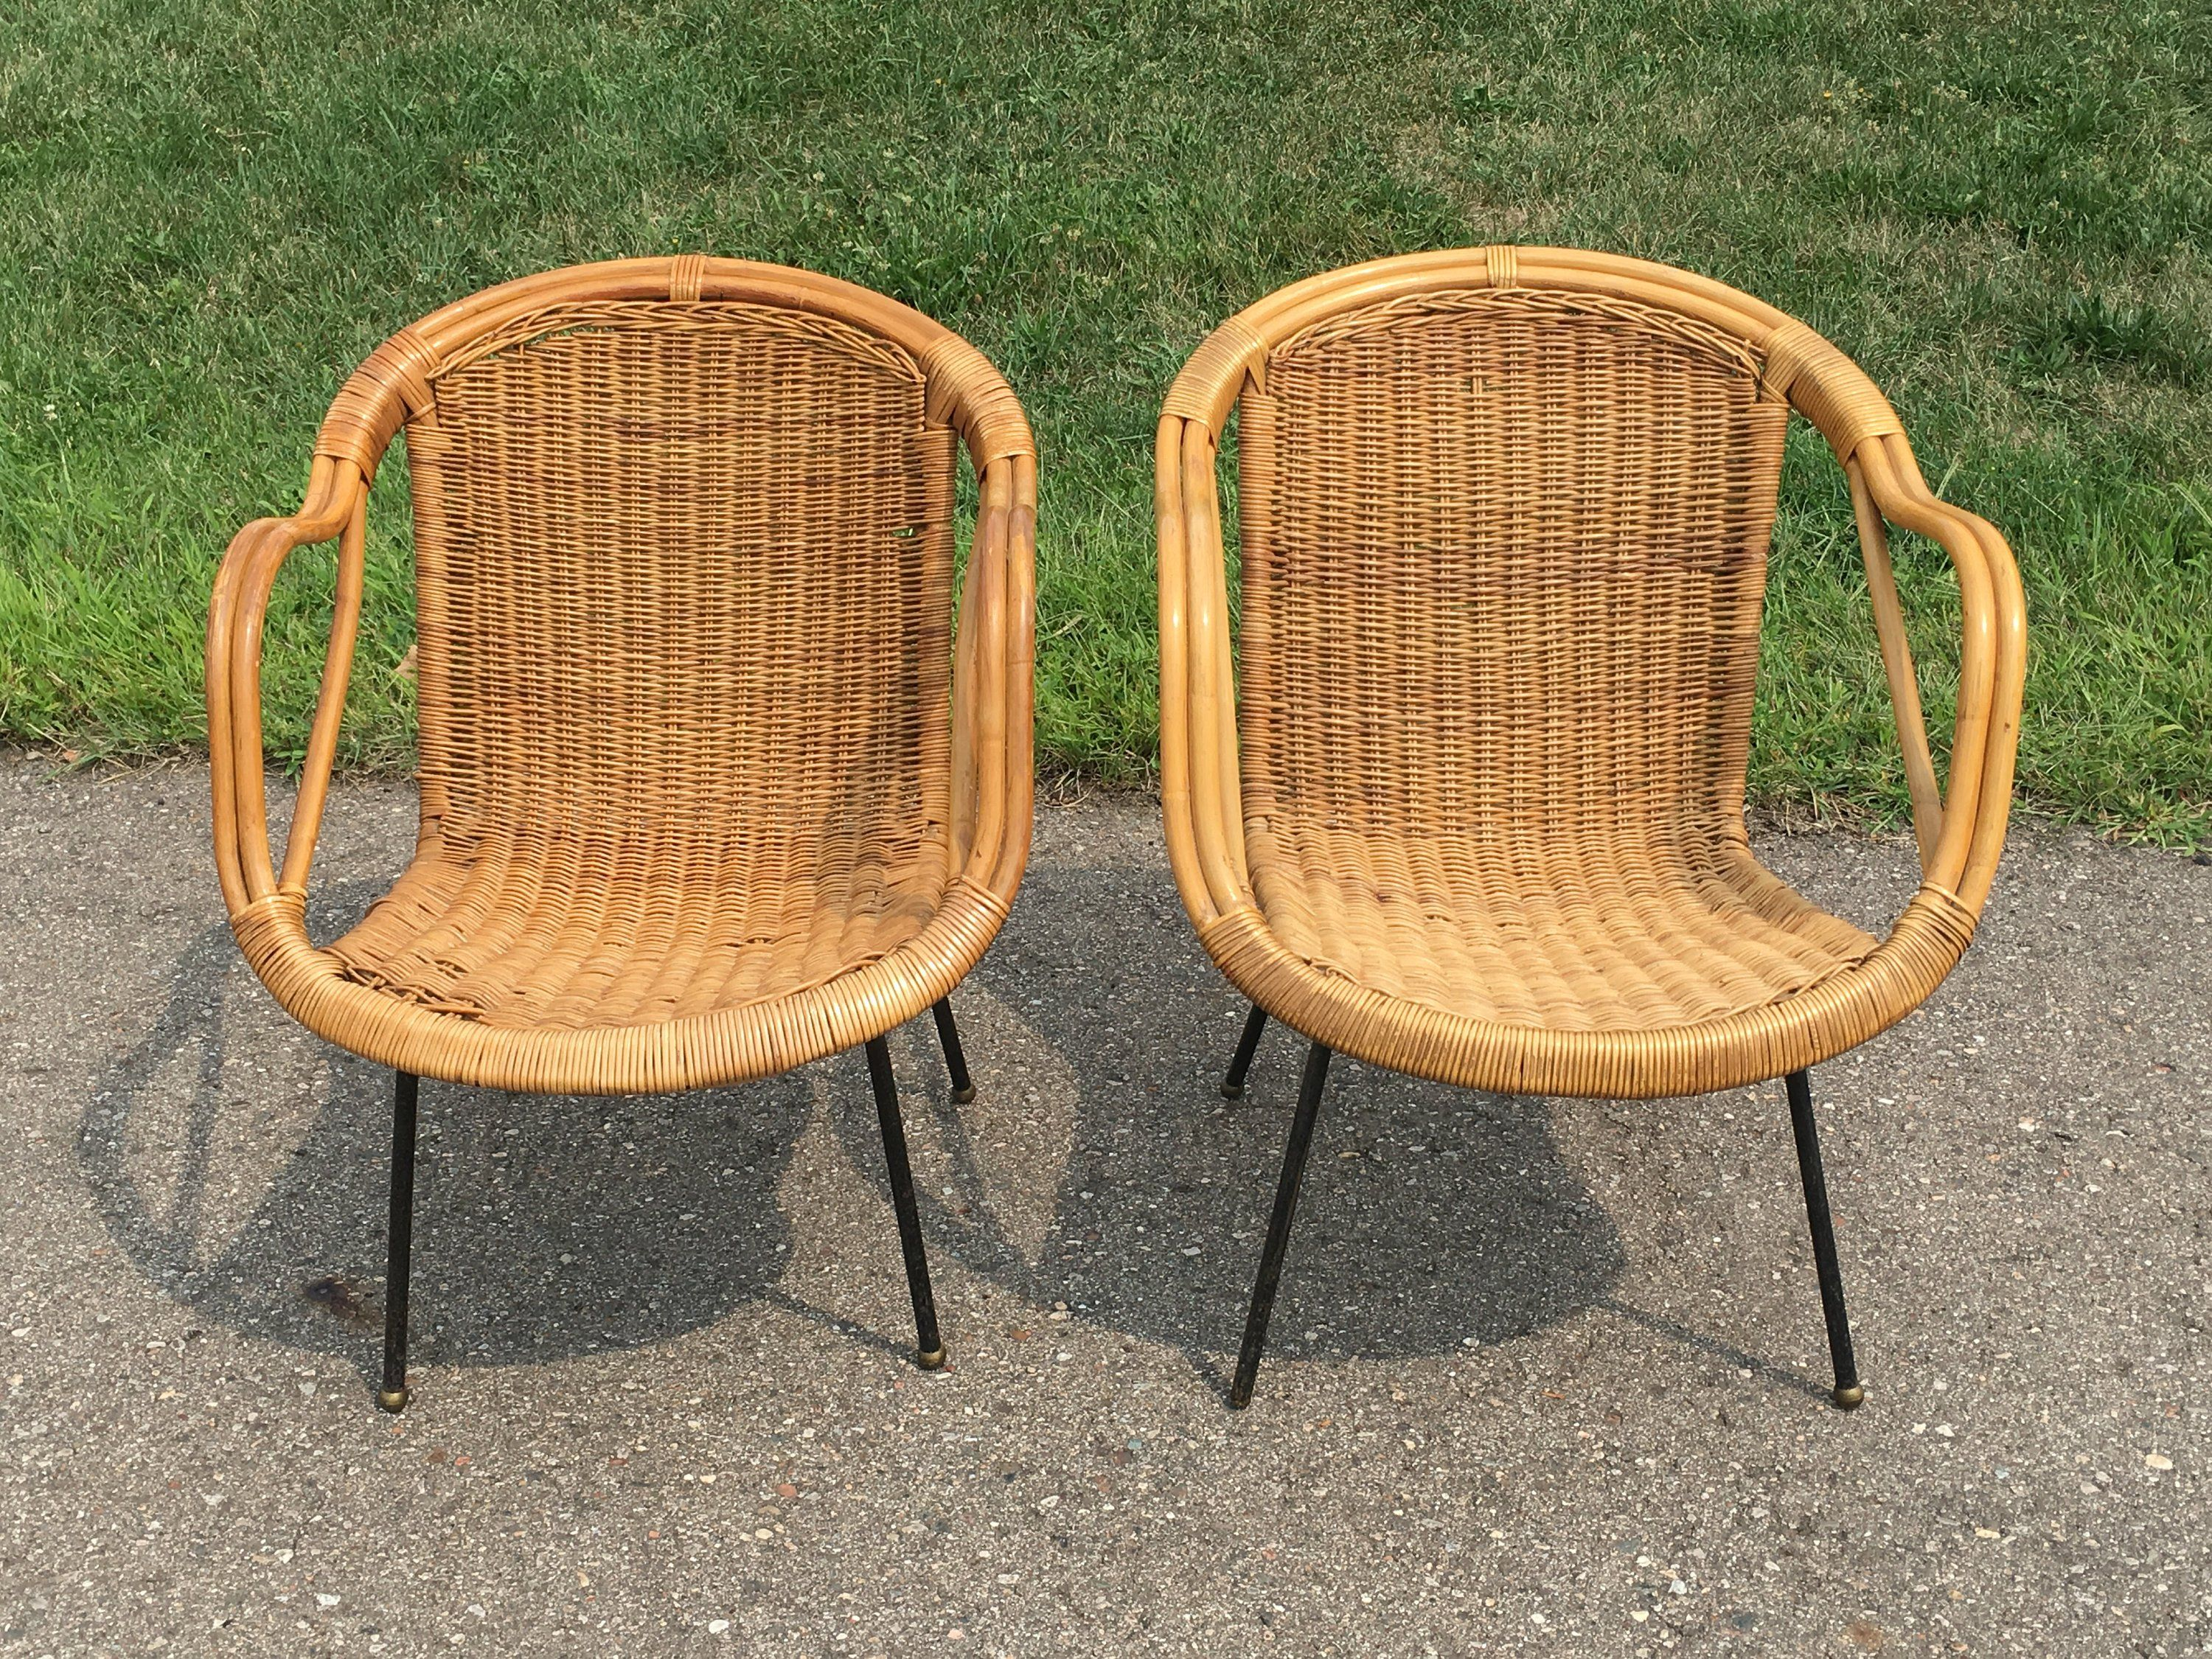 Pair Vintage Rattan Chairs Rattan Furniture Wicker Furniture